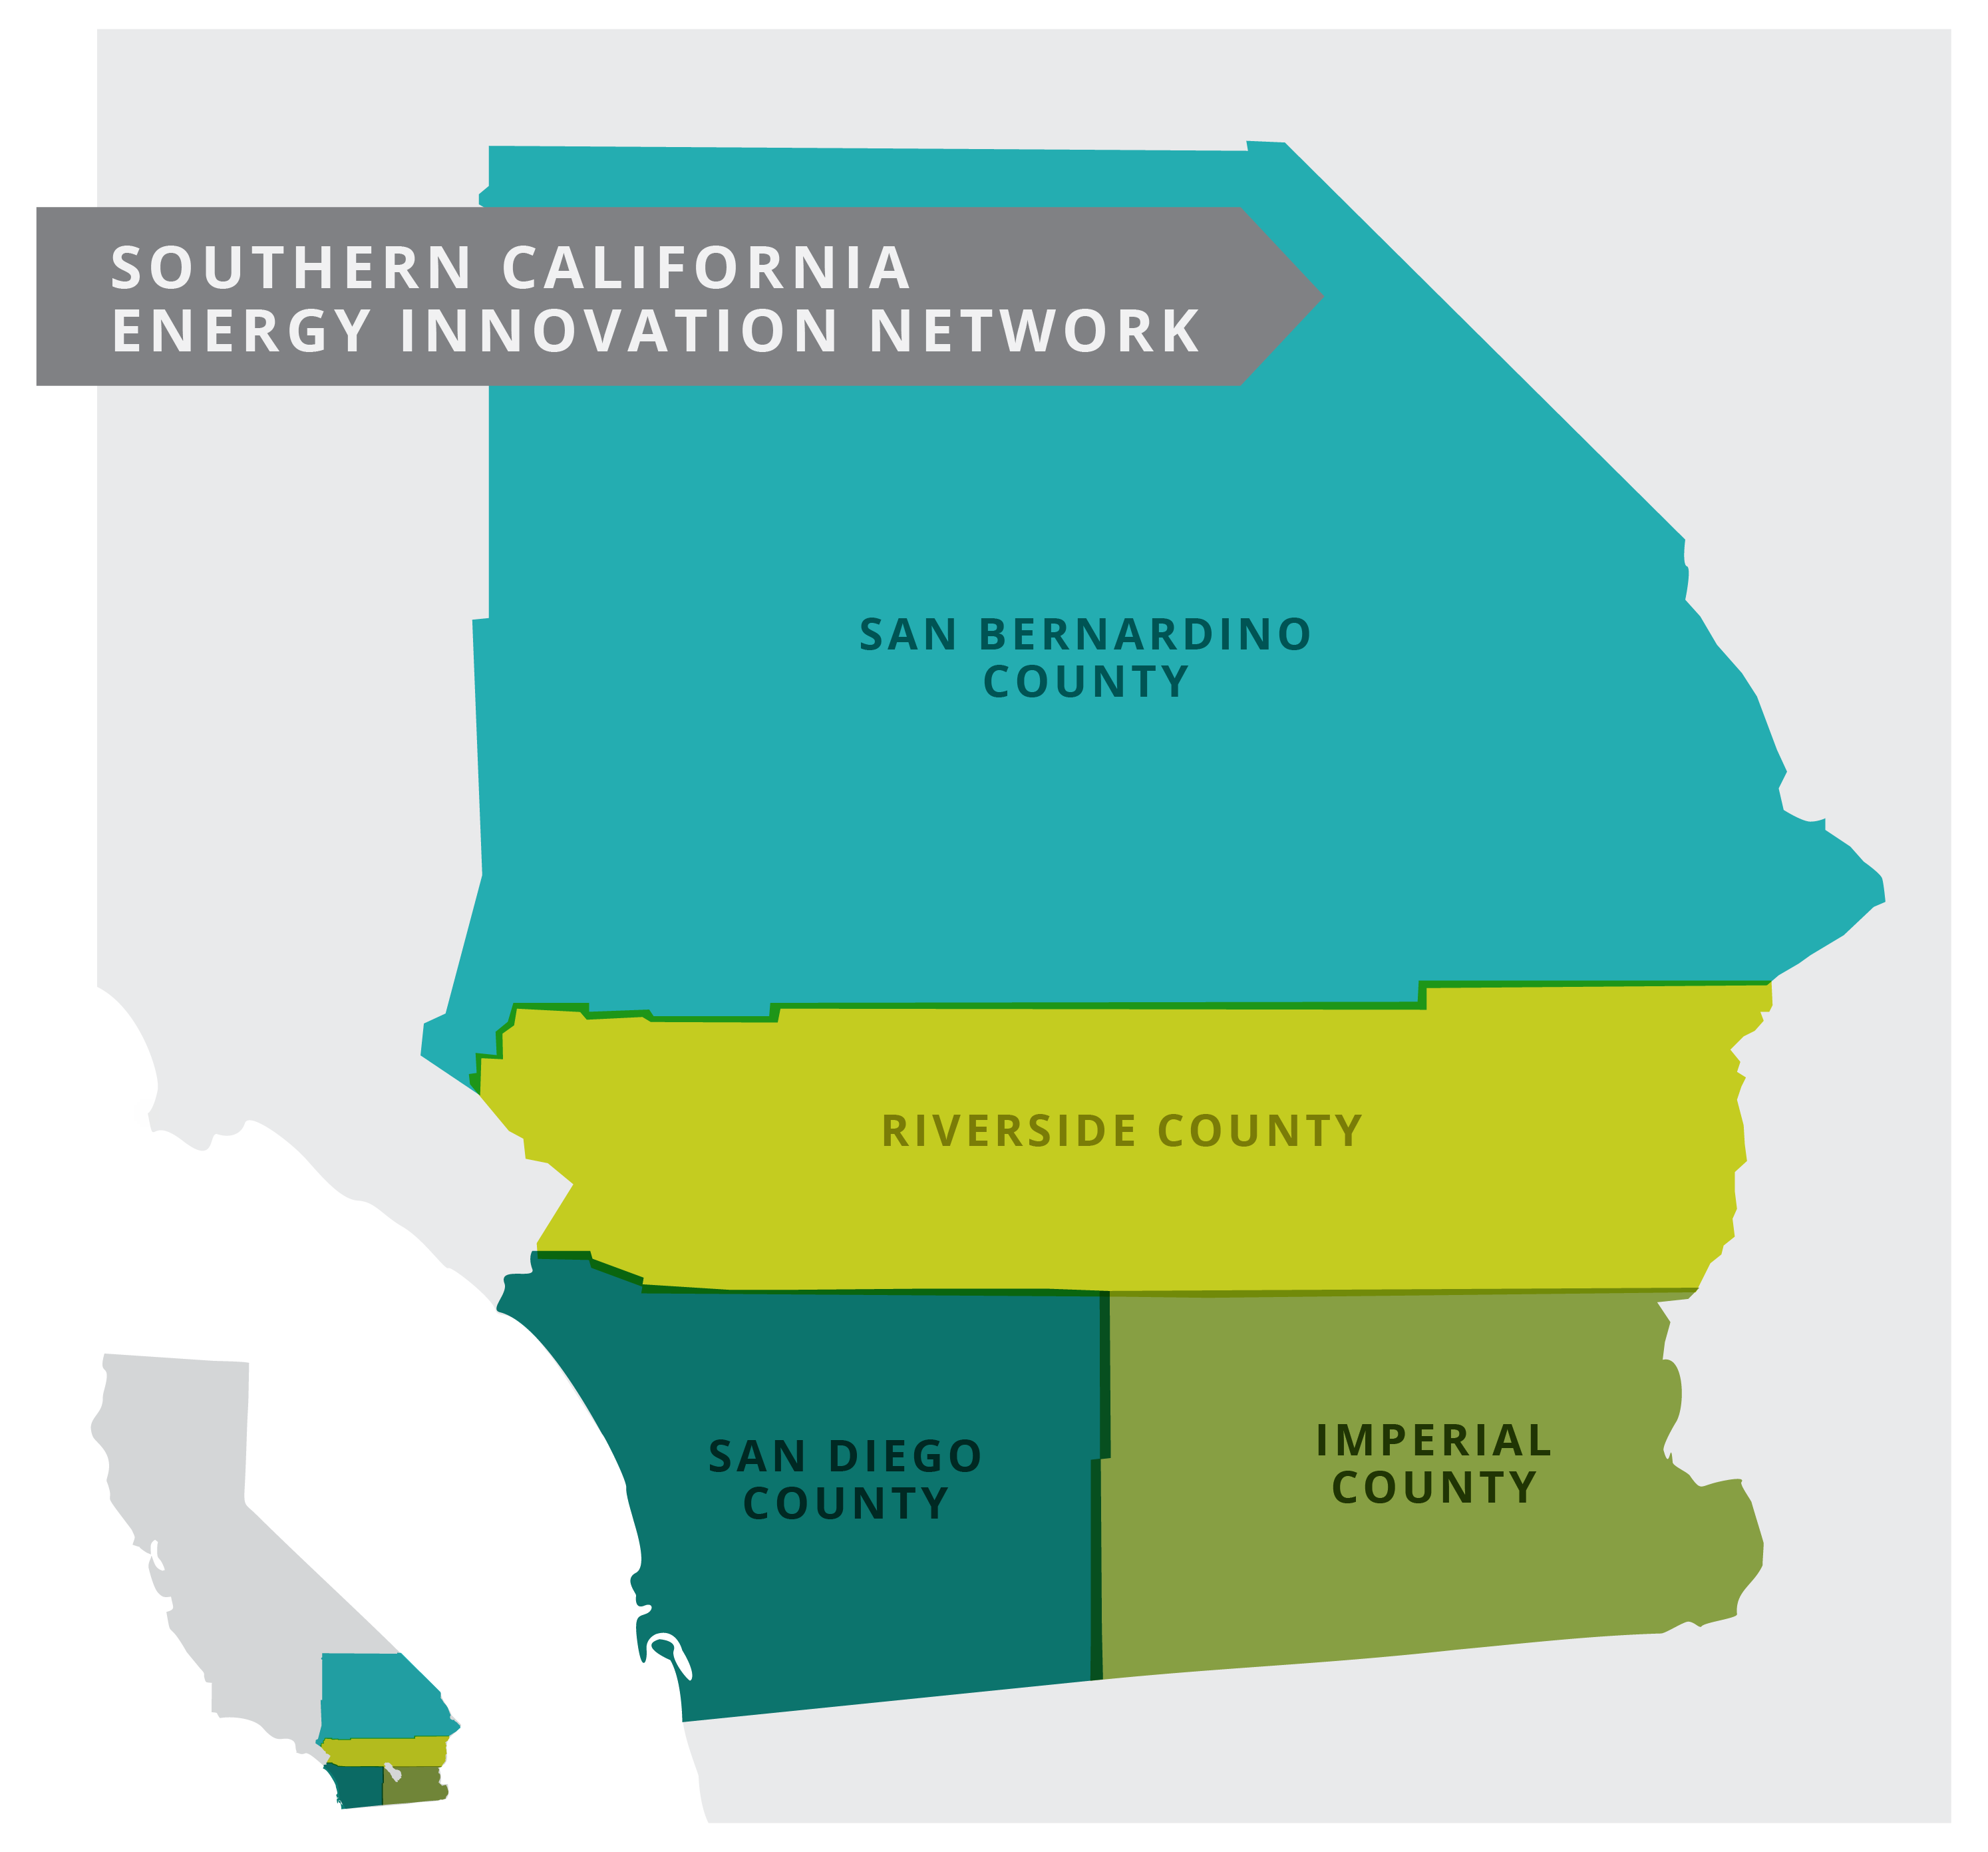 Southern California Energy Innovation Network Map